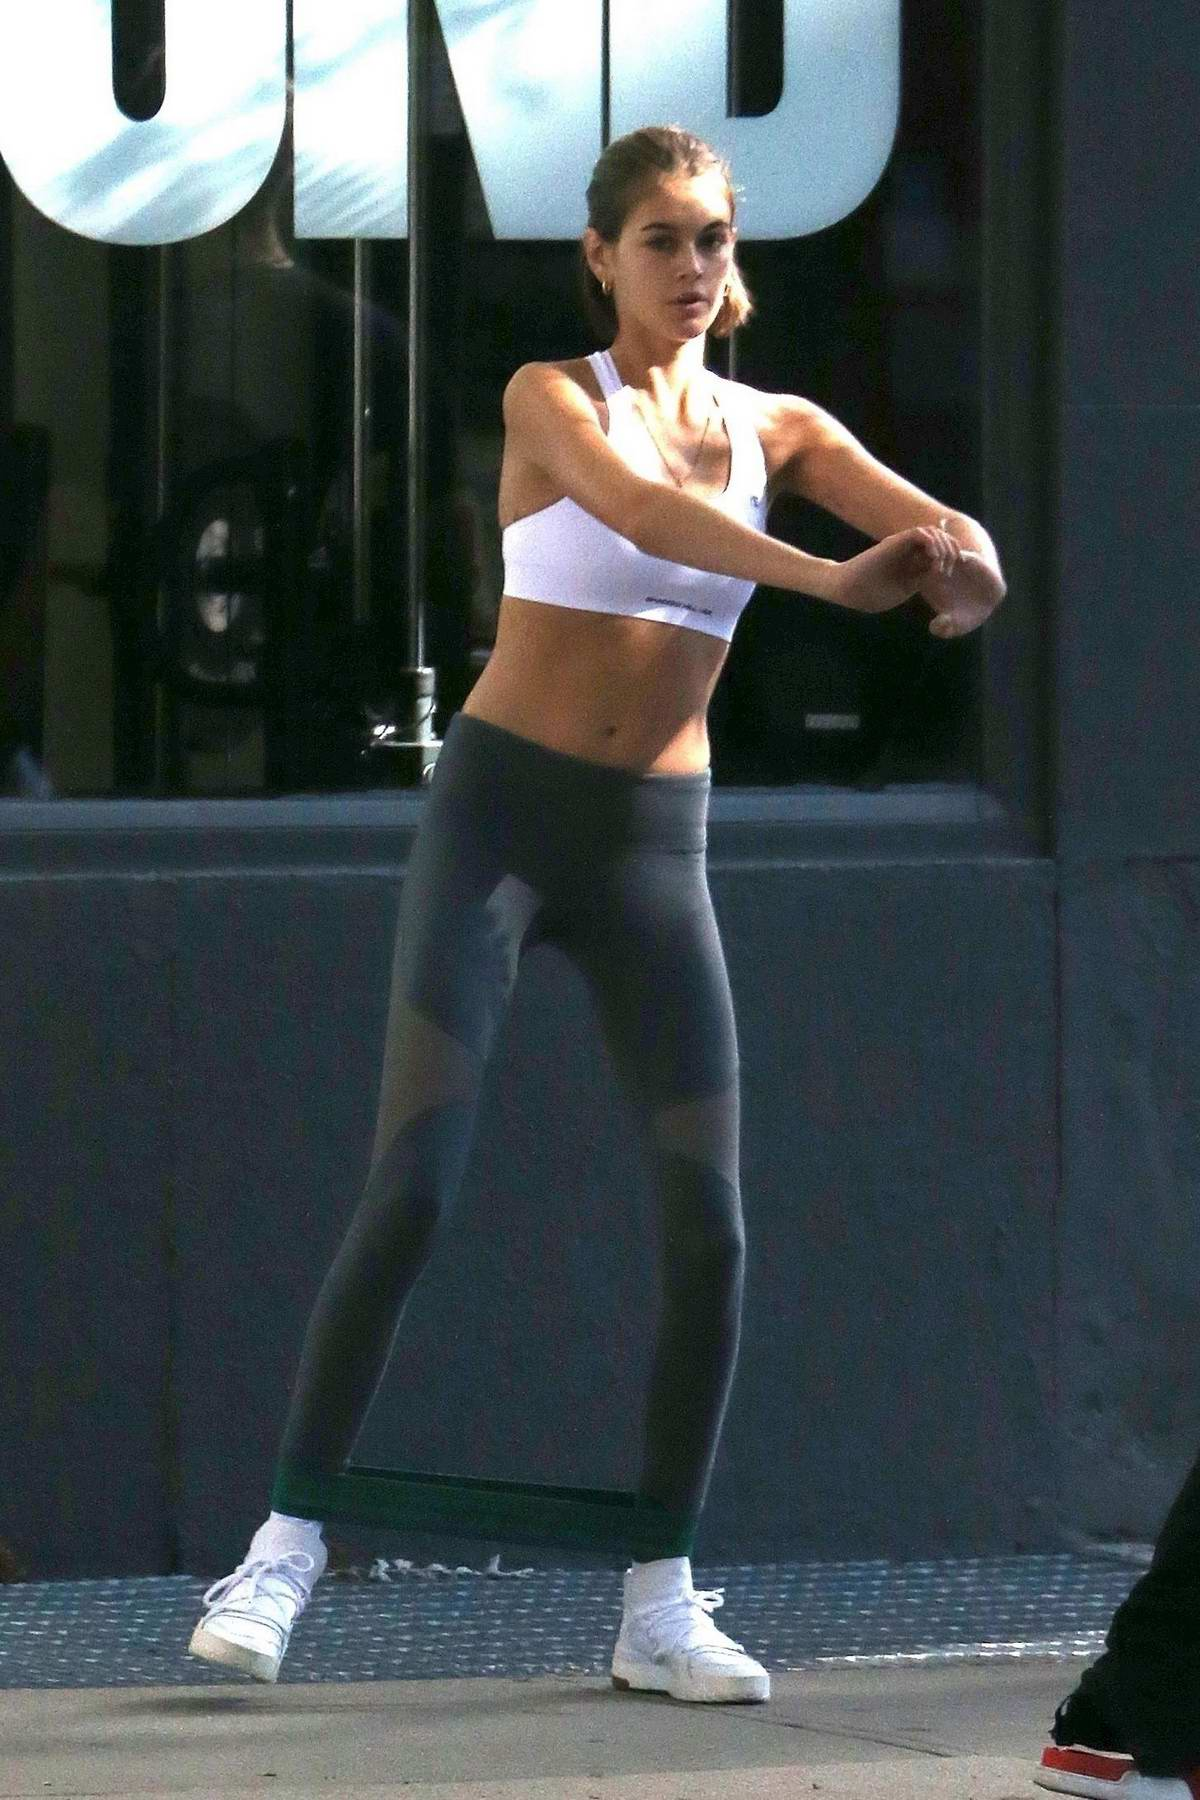 Kaia Gerber shows off her slender physique in a sports bra and leggings during a workout session at The Dogpound Gym in New York City